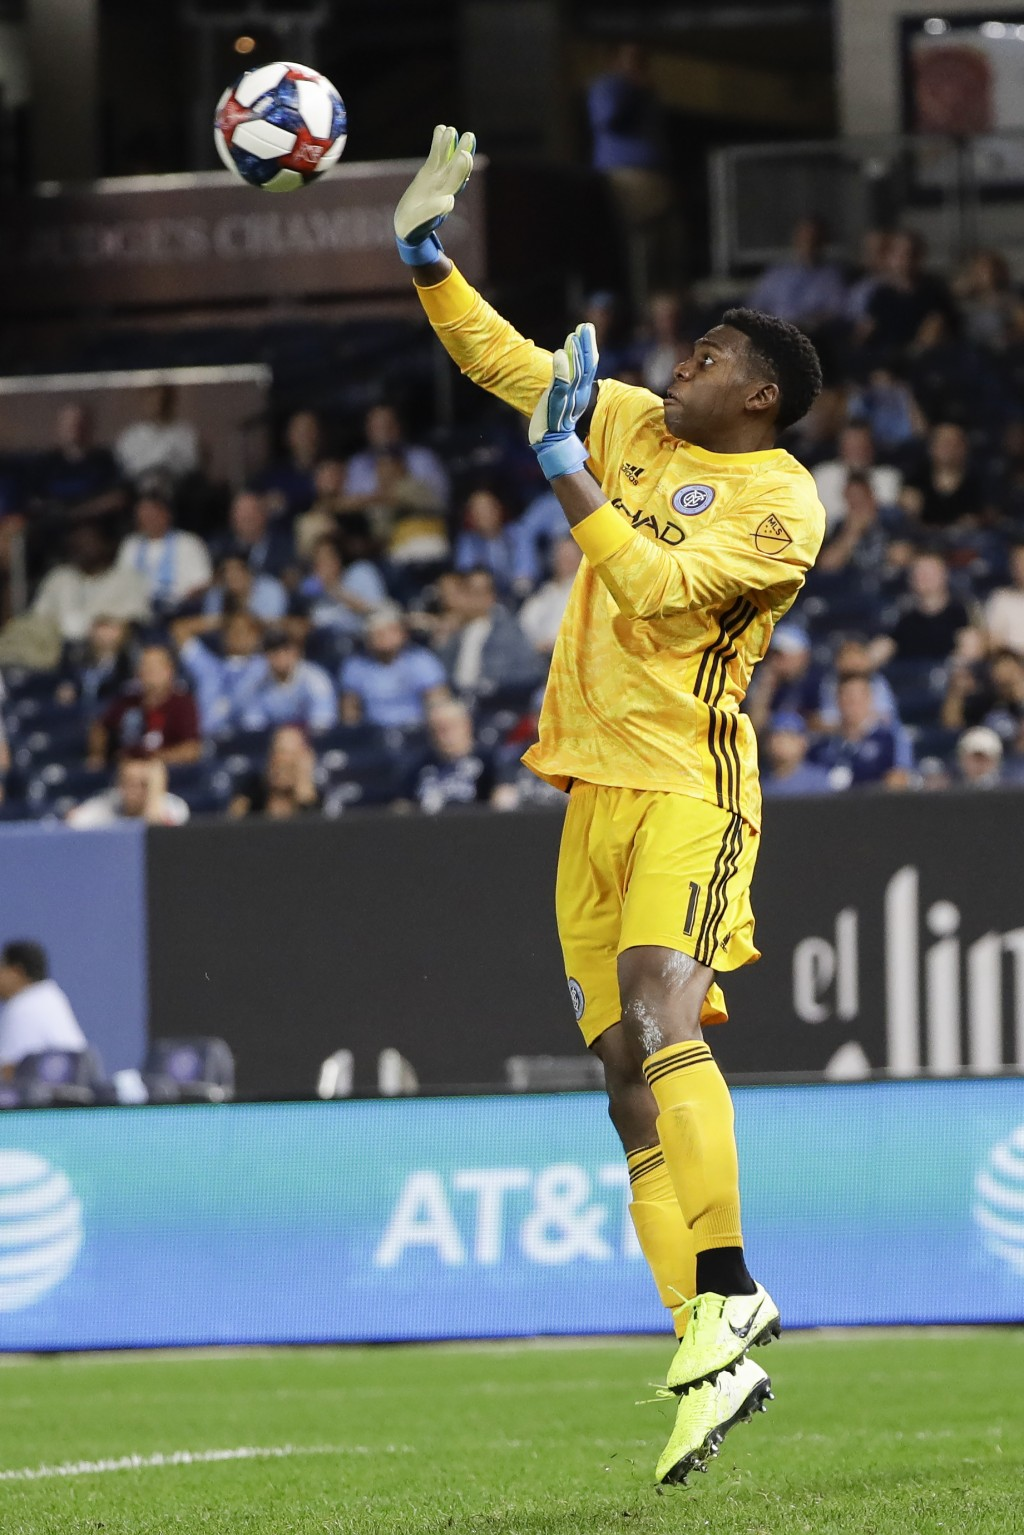 New York City FC goalkeeper Sean Johnson deflects a shot on the goal during the second half of an MLS soccer match against Toronto FC Wednesday, Sept....